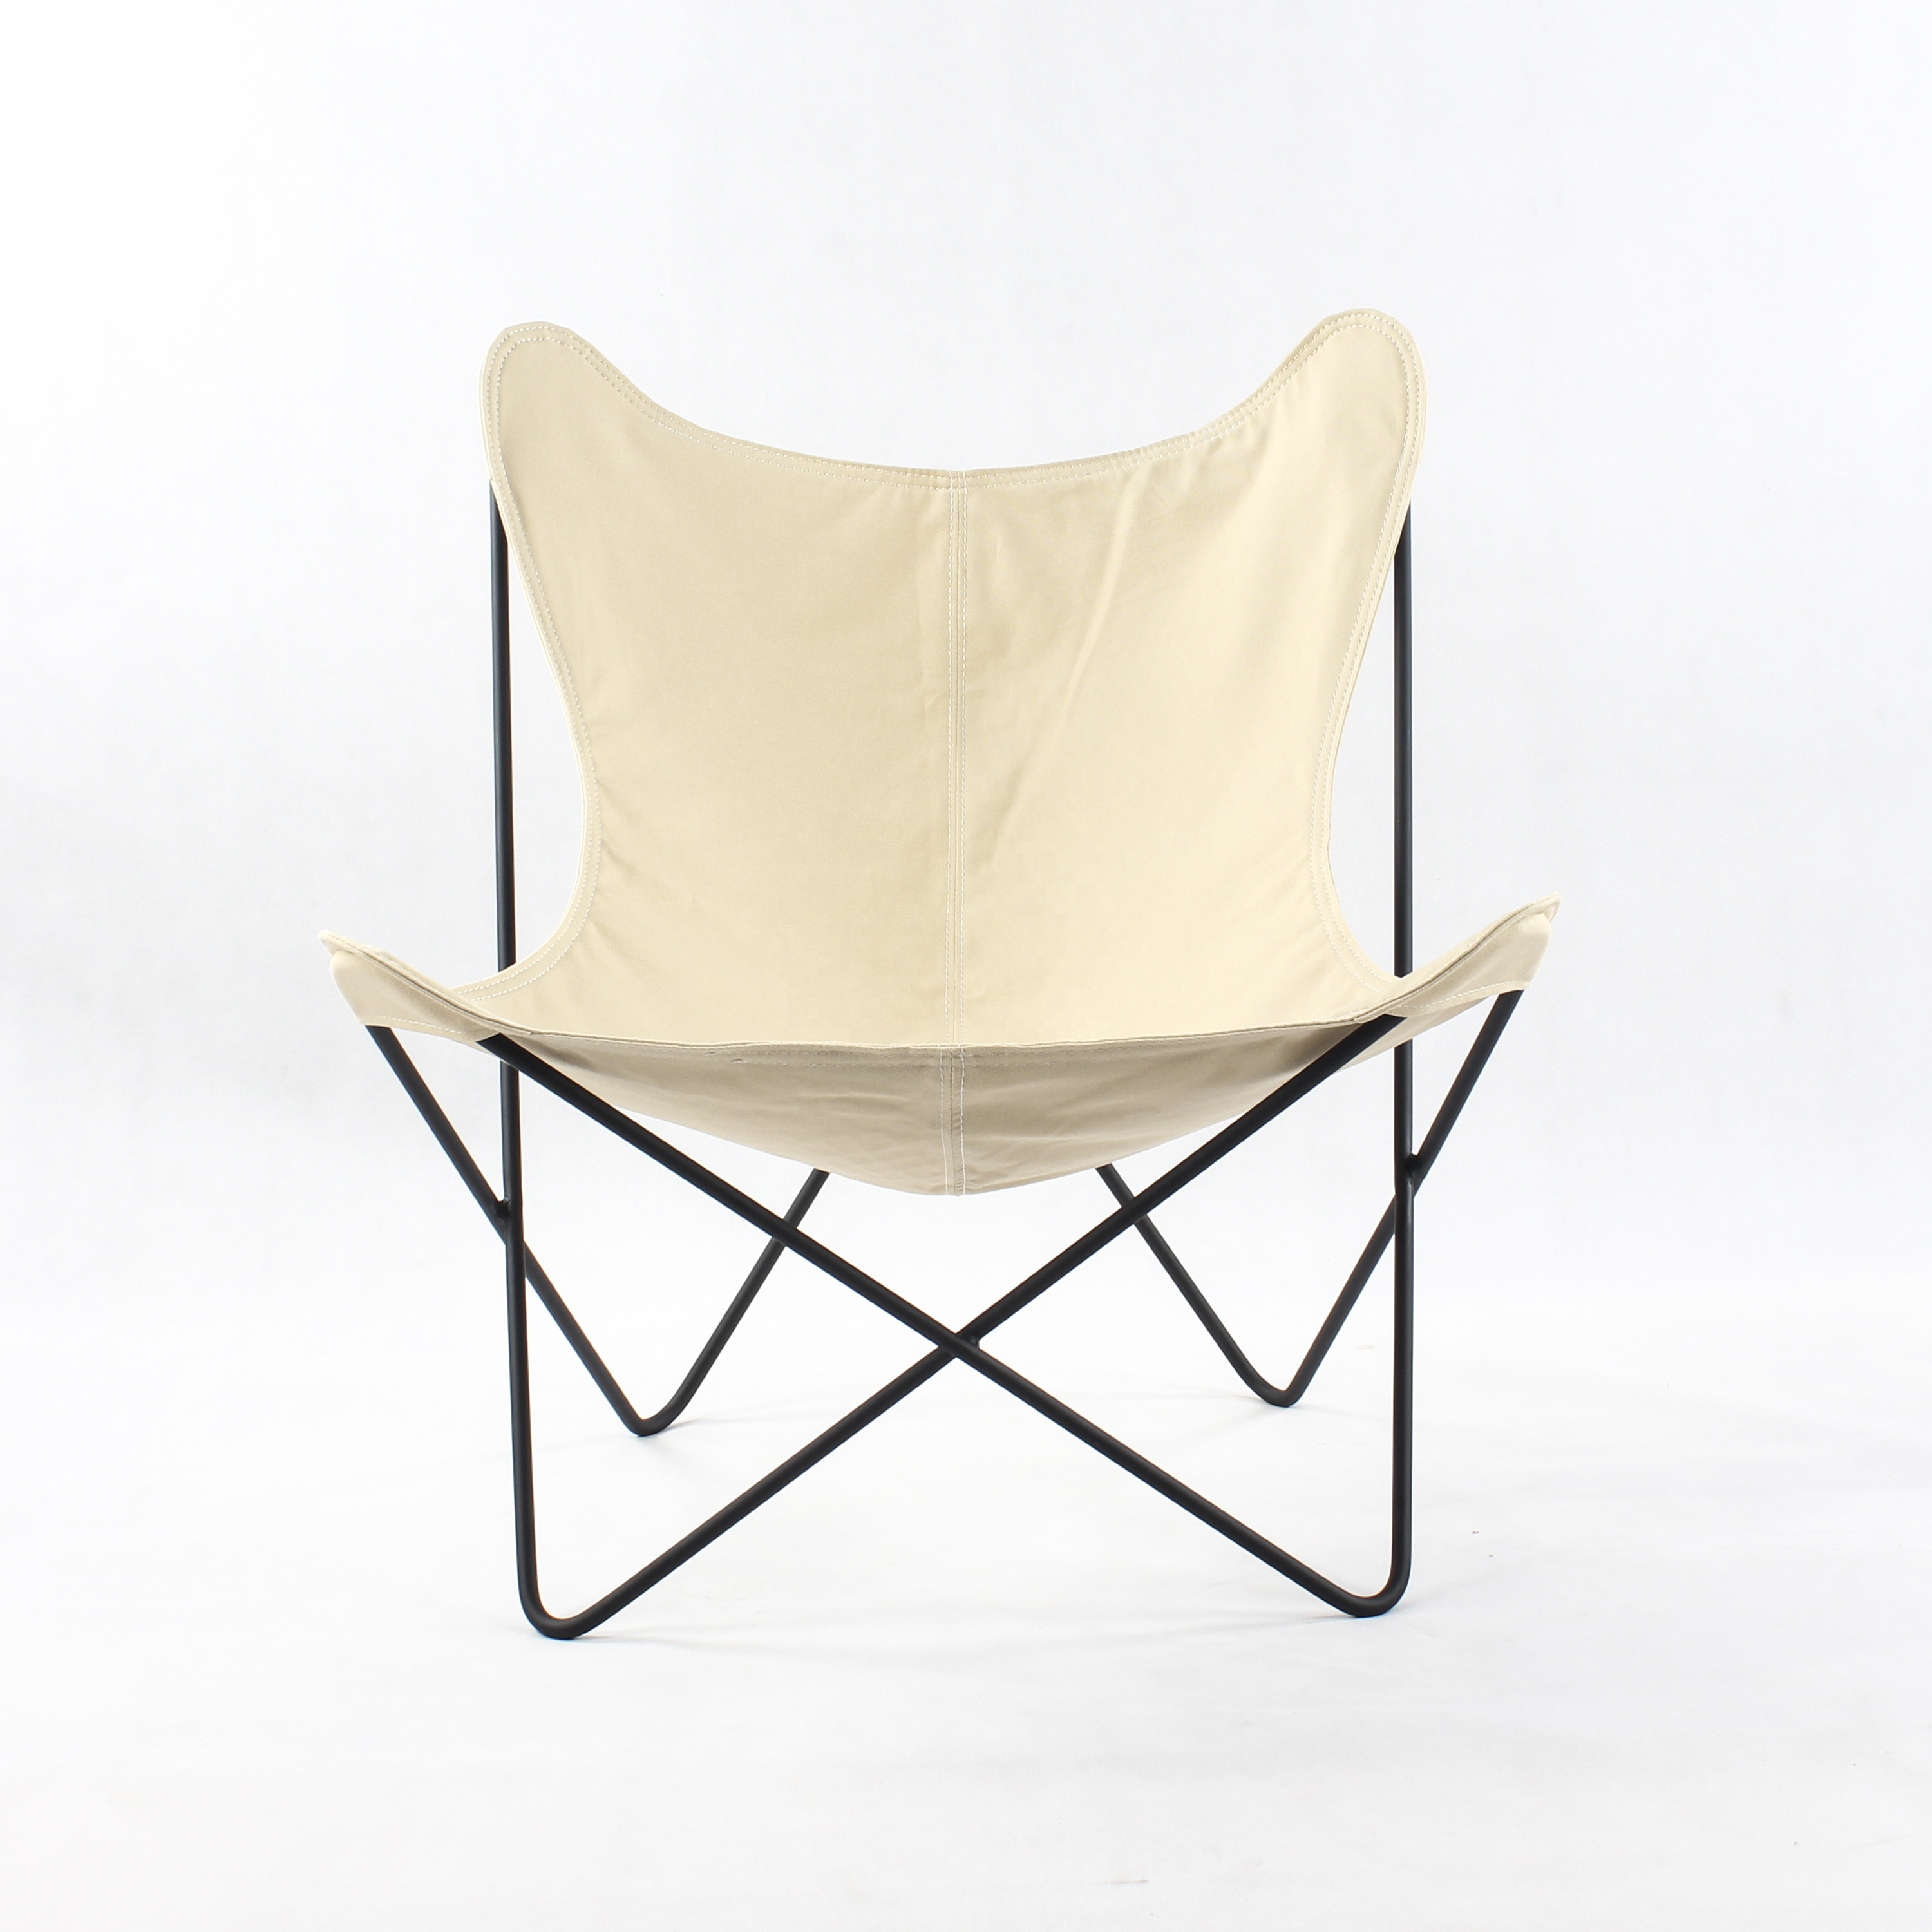 Brilliant Bkf Butterfly Chair With White Canvas Ca083 Buy Bkf Butterfly Chair Bkf Chair Butterfly Chair White Canvas Product On Alibaba Com Ncnpc Chair Design For Home Ncnpcorg